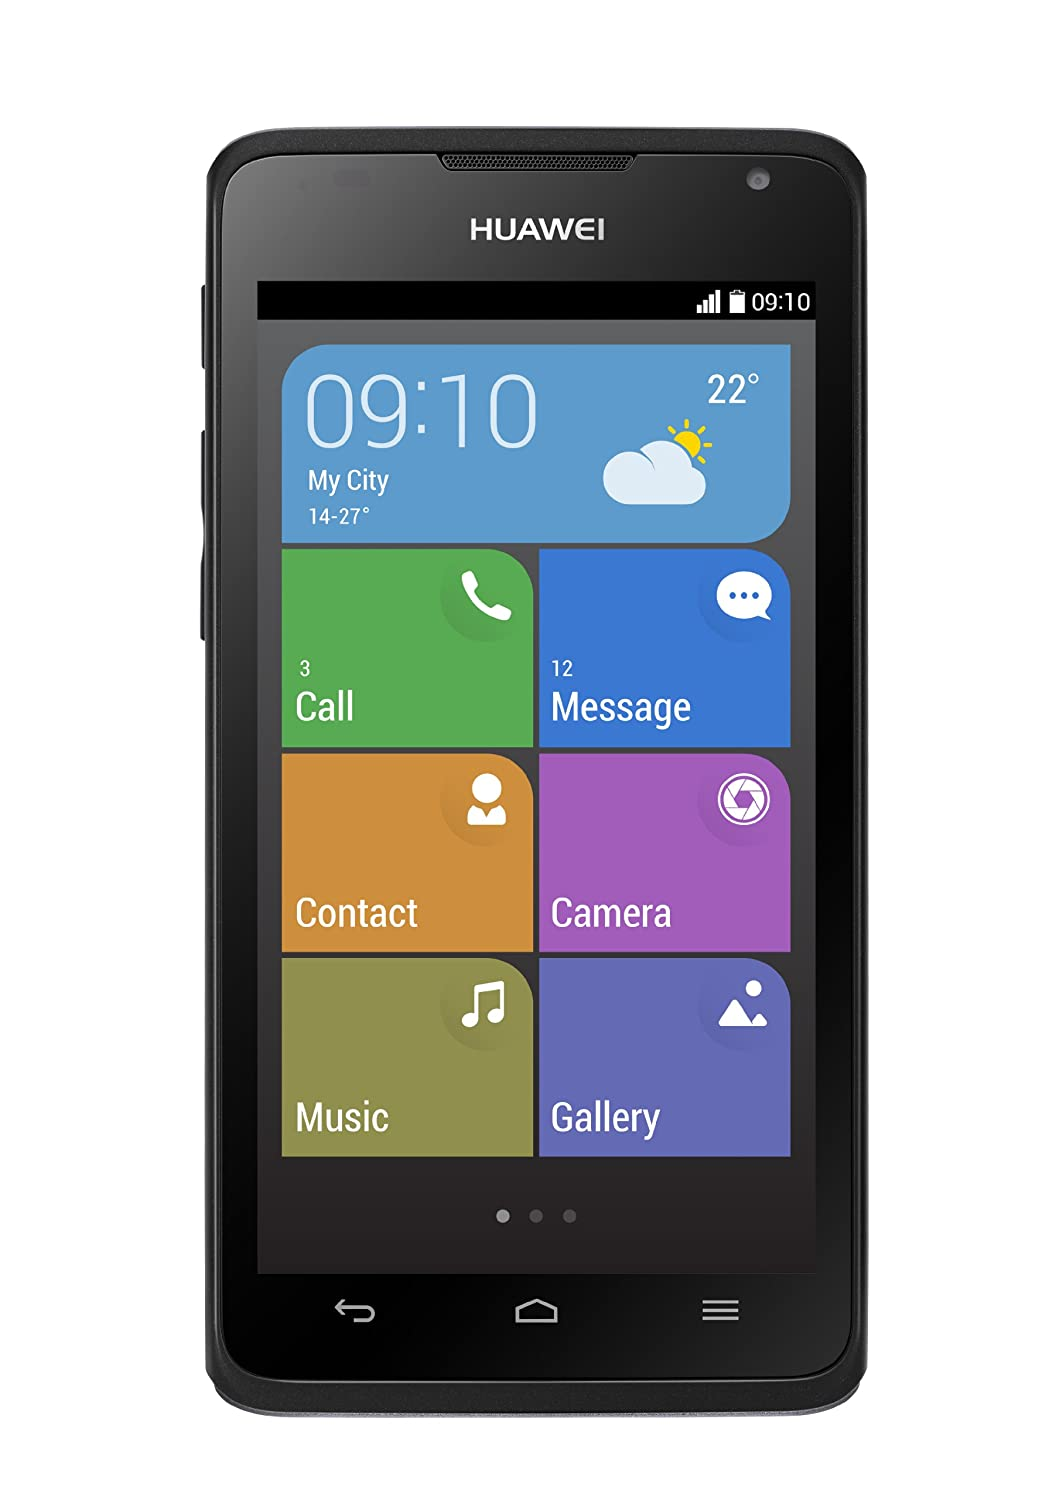 Huawei Ascend Y530 Sim Free Smartphone (Genuine UK Stock) 4 5 inch, 1 2GHz  Dual Core, 5mp Camera, MicroSD up to 32GB - Black